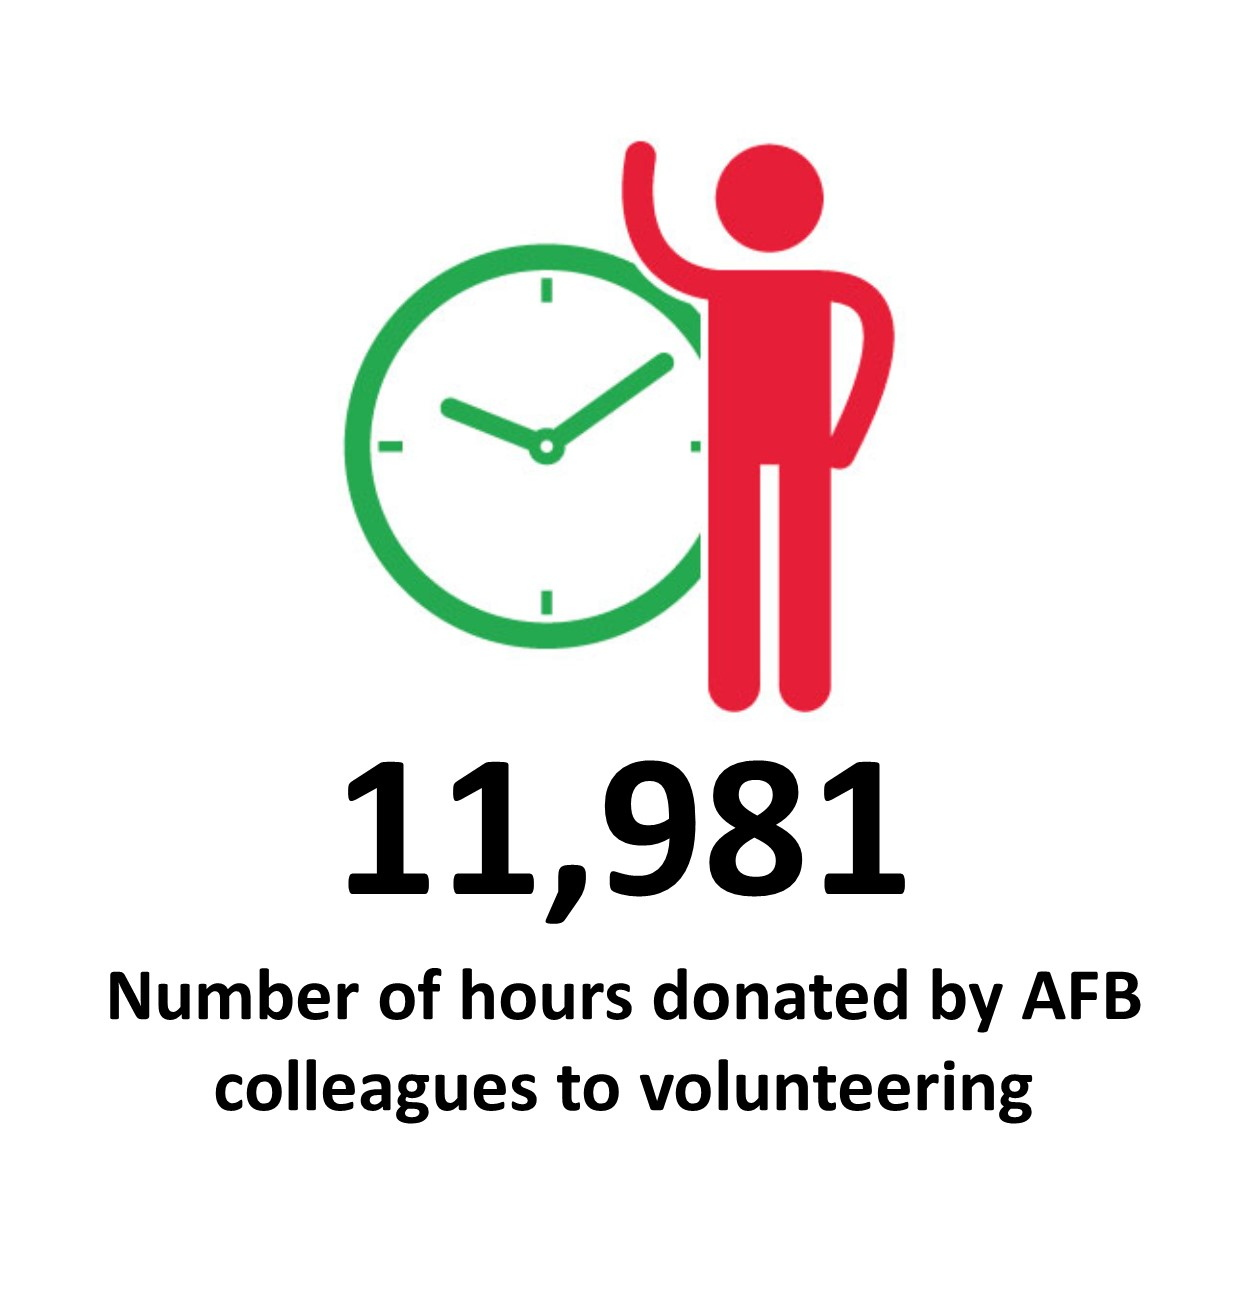 Number_of_hours_donated_by_AFB_colleagues_to_volunteering